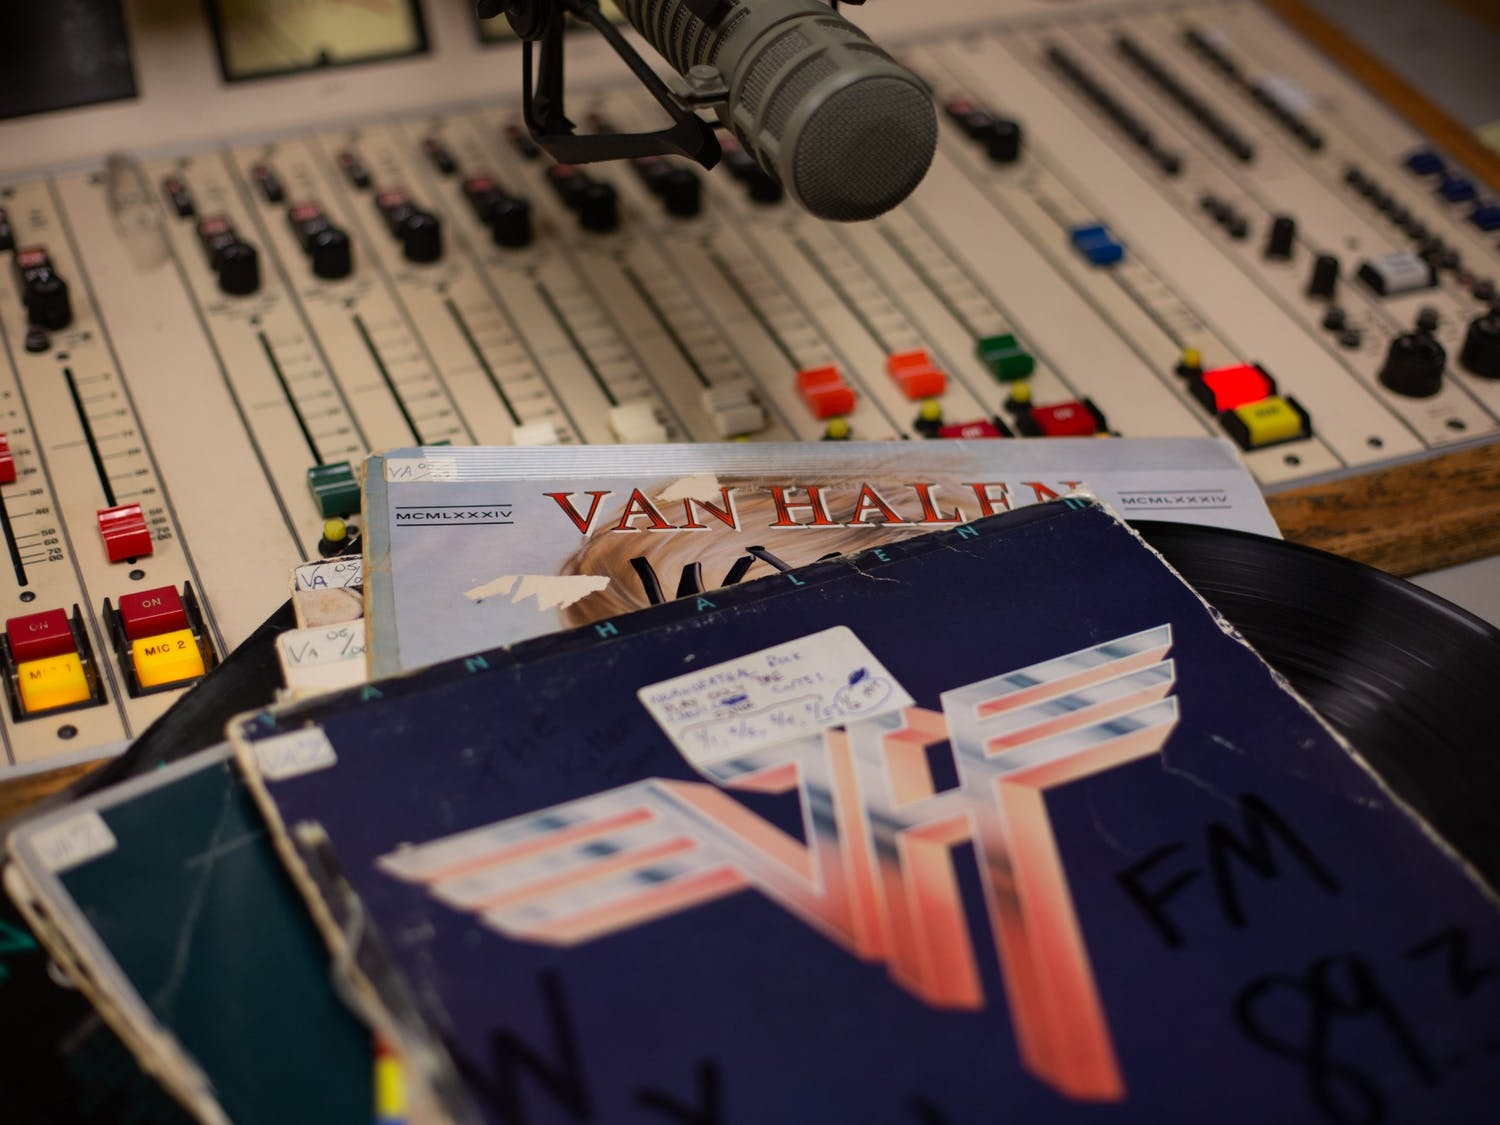 DTH Photo Illustration. A stack of Van Halen records sits on top of a mixing board.